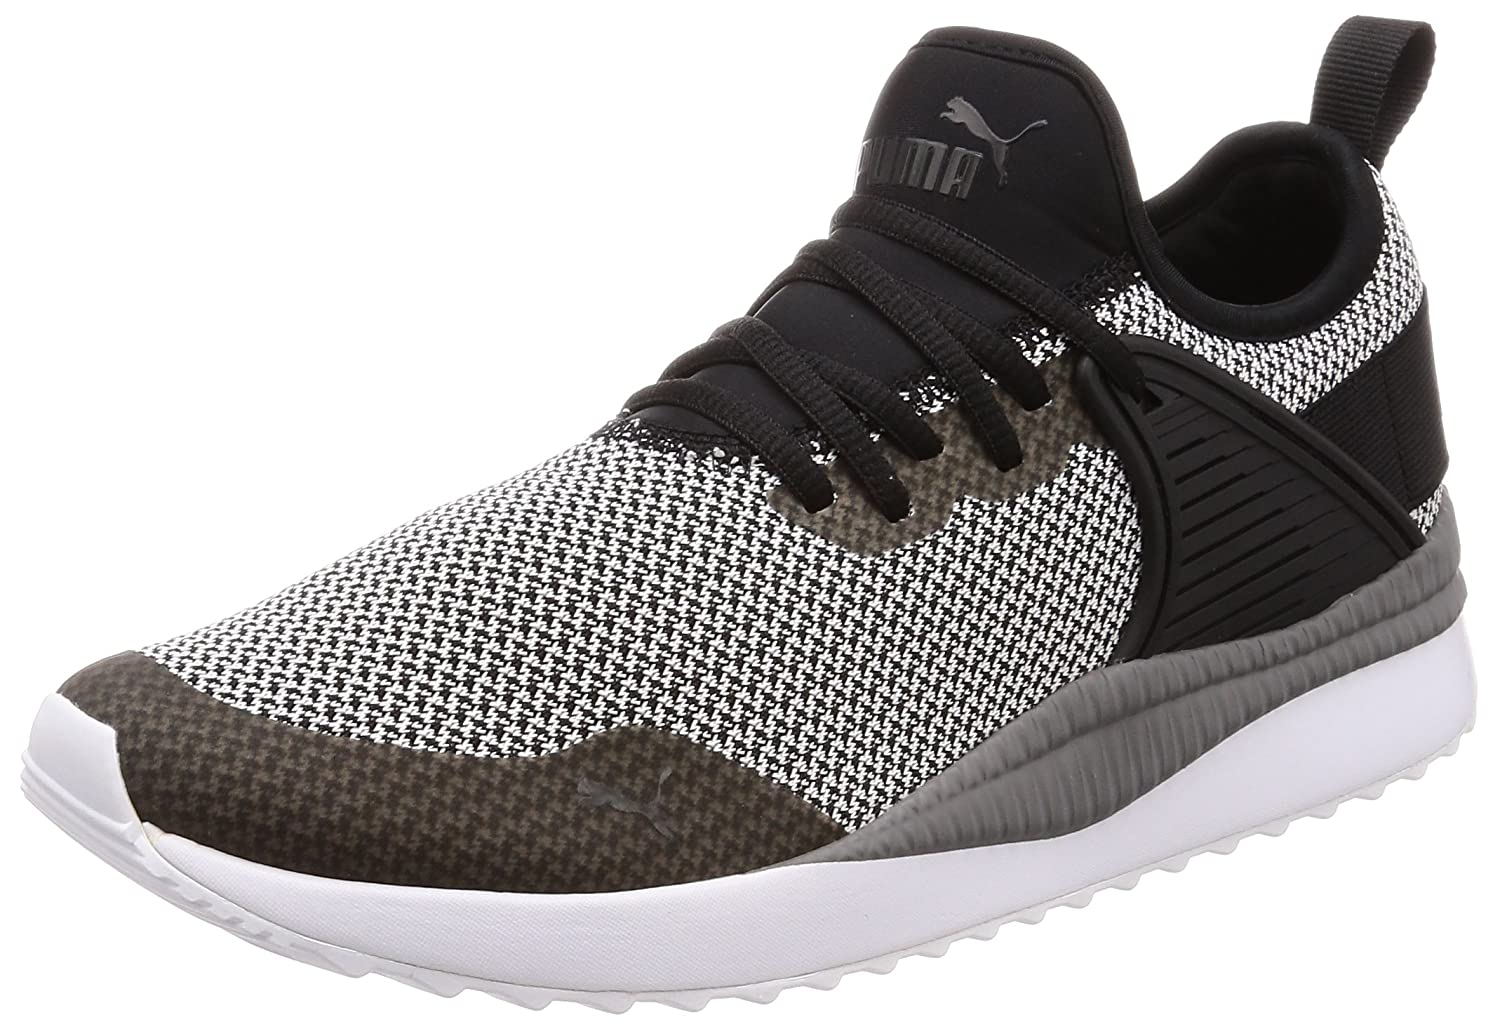 Pacer Next Cage Gk Black Sneakers-10 UK